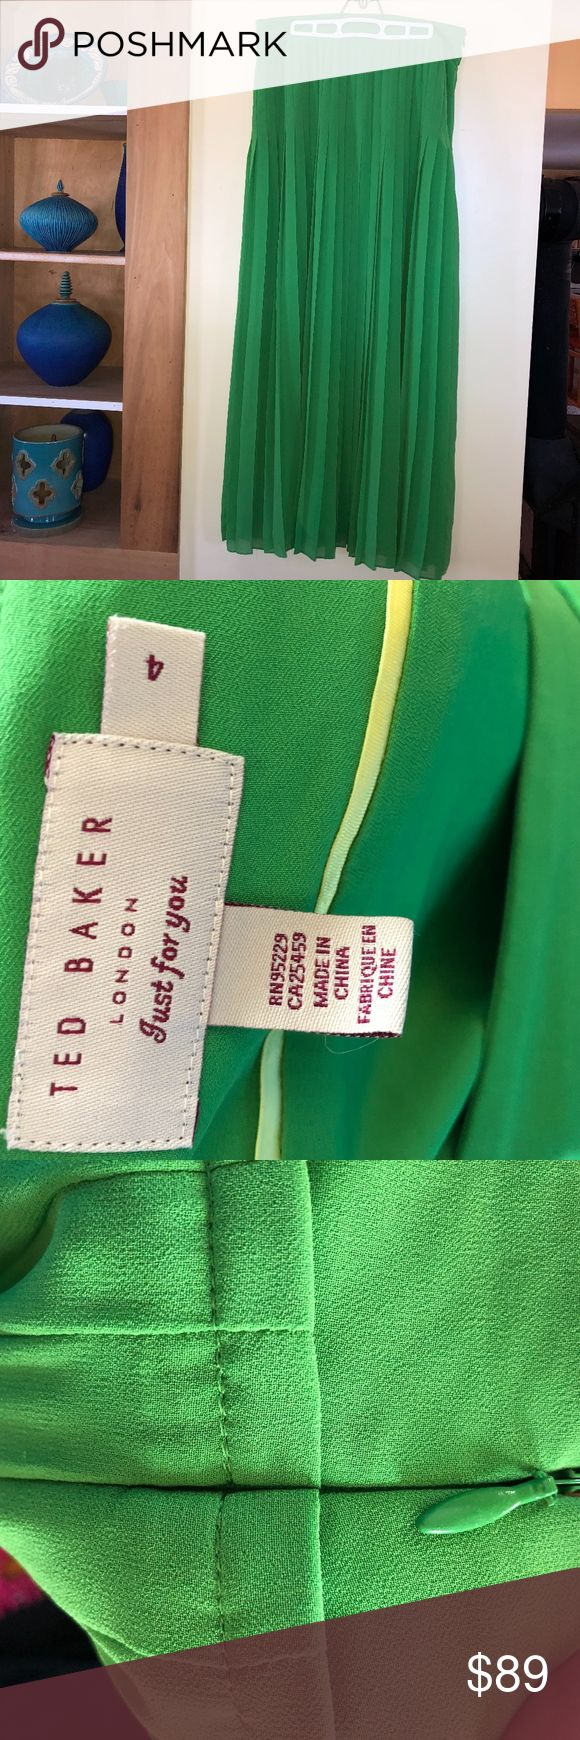 "TED BAKER (London) long pleated green maxi skirt Ted Baker/London pleated maxi skirt.  size reads 4 but in my opinion this fits more like a 10 or even a 12  so PLEASE go by measurements to be sure of fit/size.  It is also quite long so if you are shorter you will need to have it hemmed.   waist-16.5""      42.5"" long  Polyester.   Lined.  pleats are flat at top so slimming. Ted Baker Skirts Maxi"